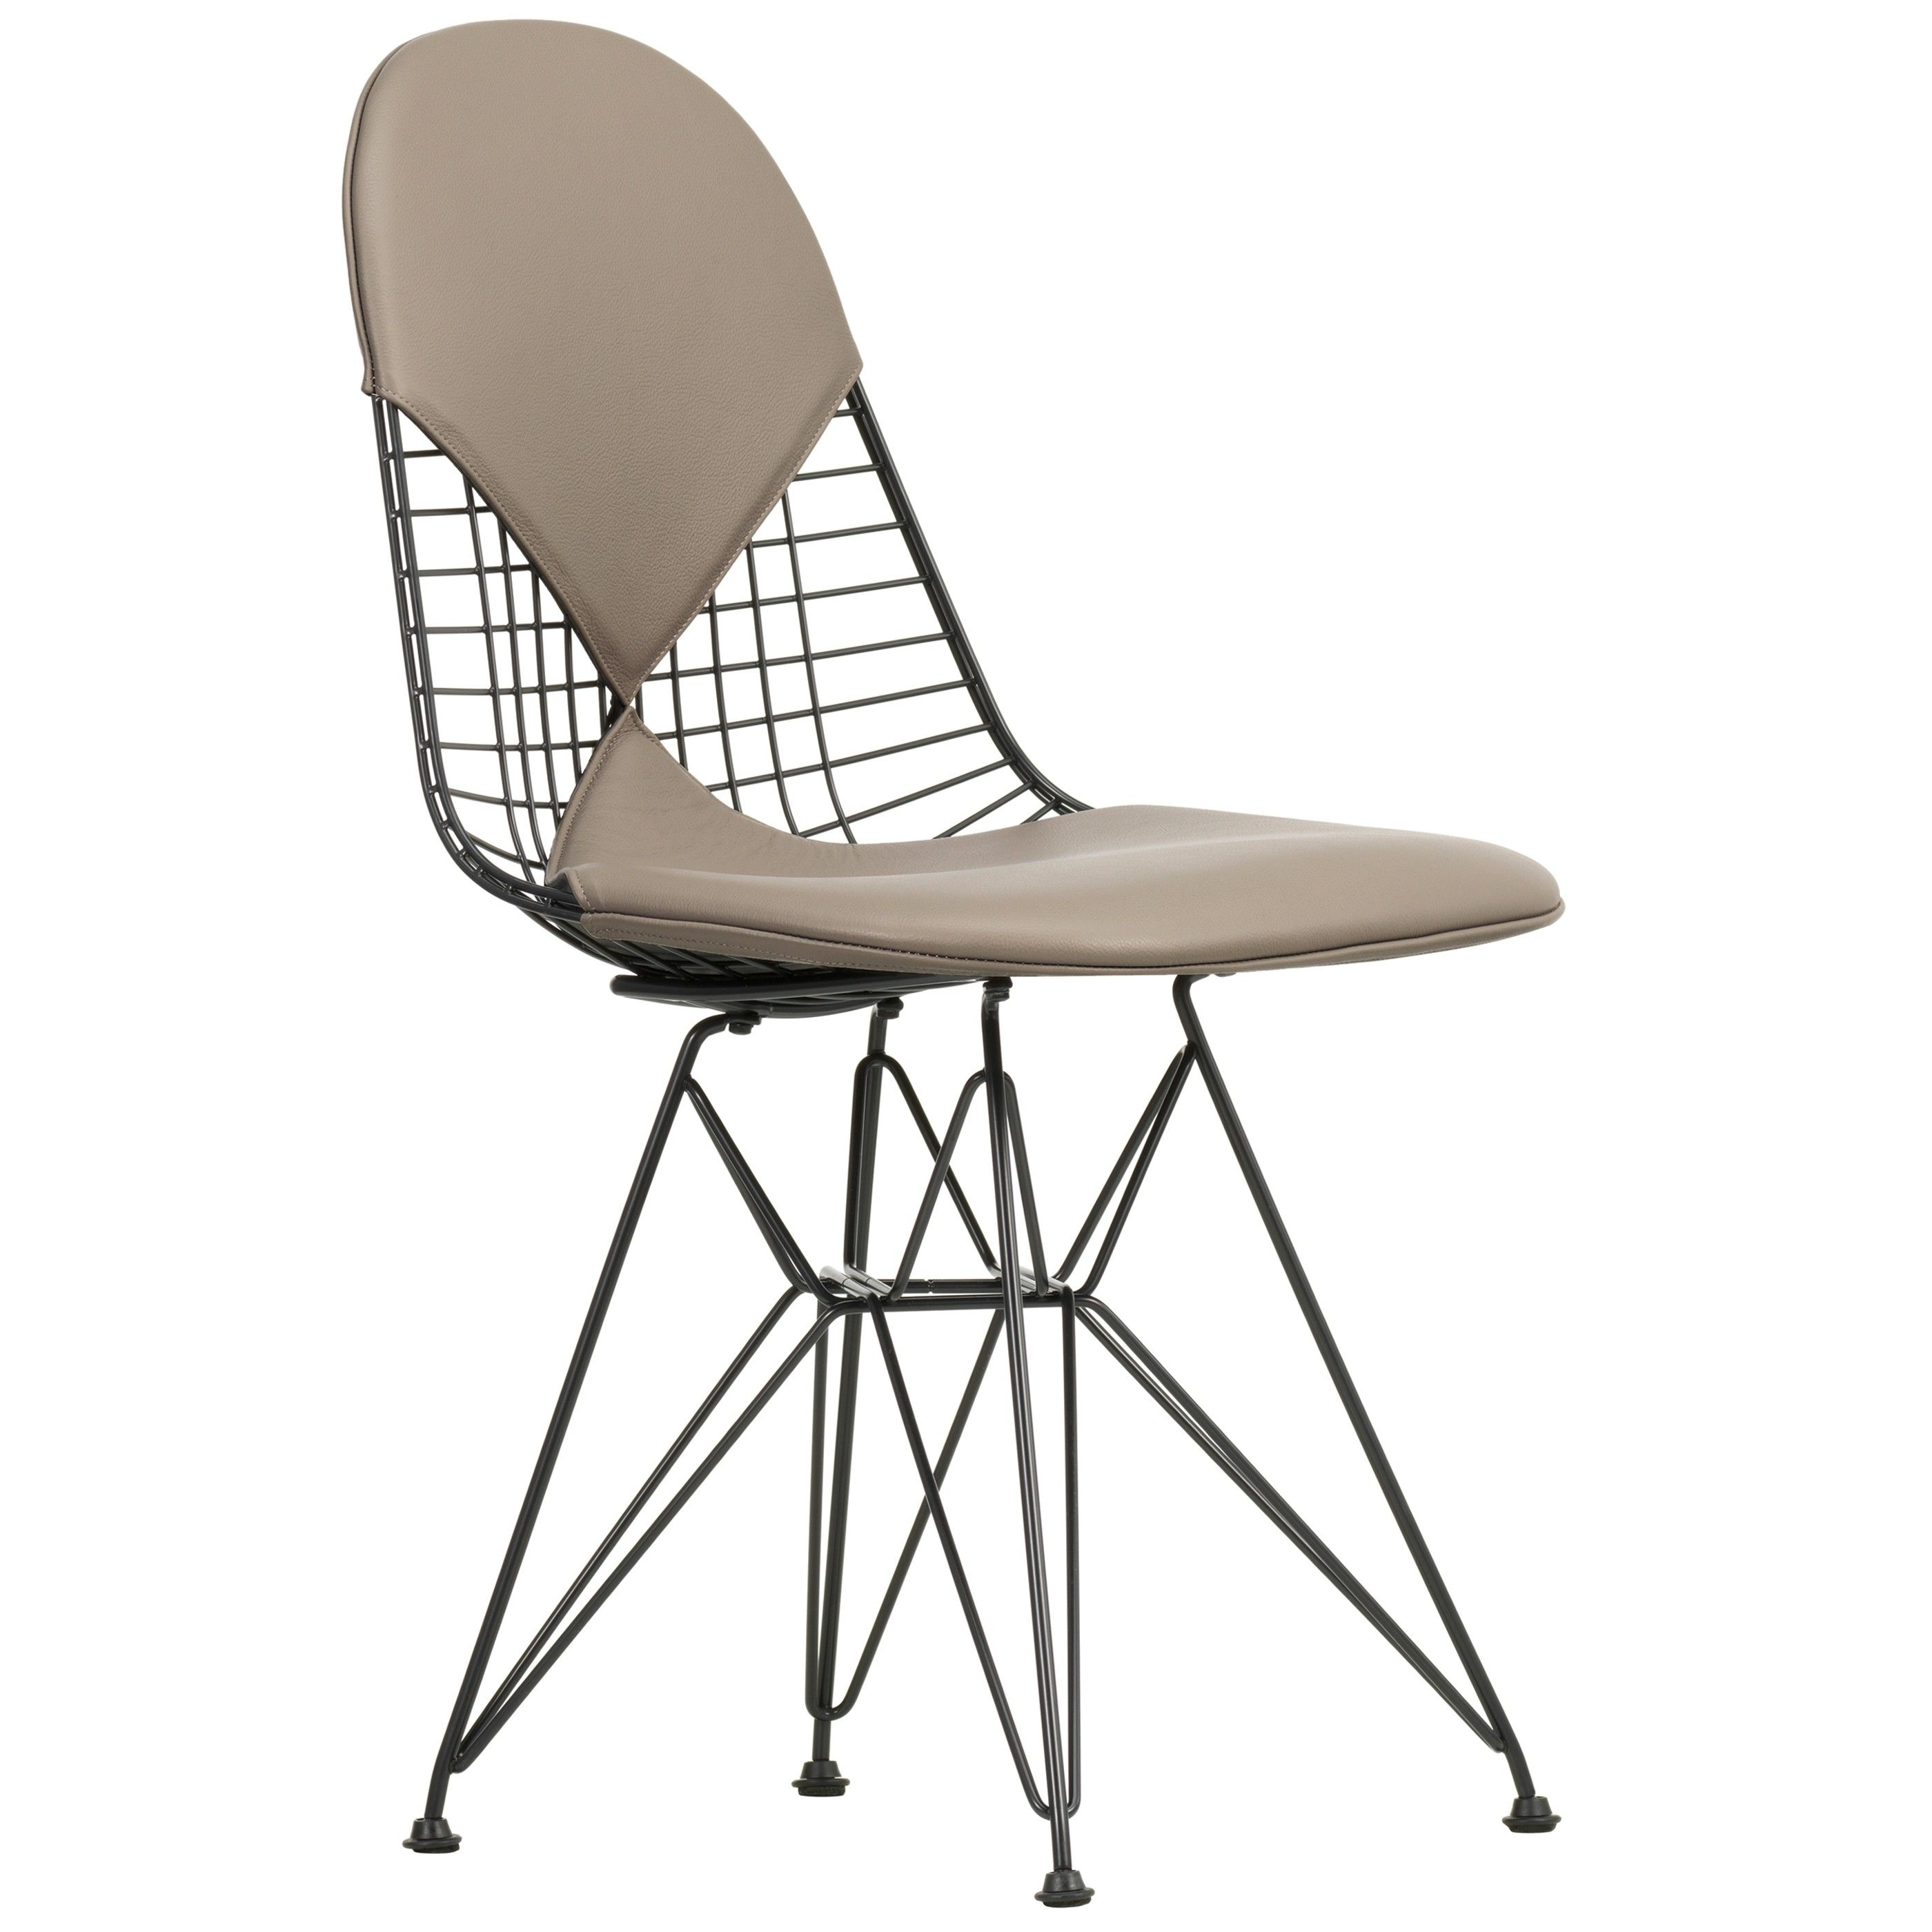 sketch attachments chair en wire dining domani product overgaard dopo dyrman